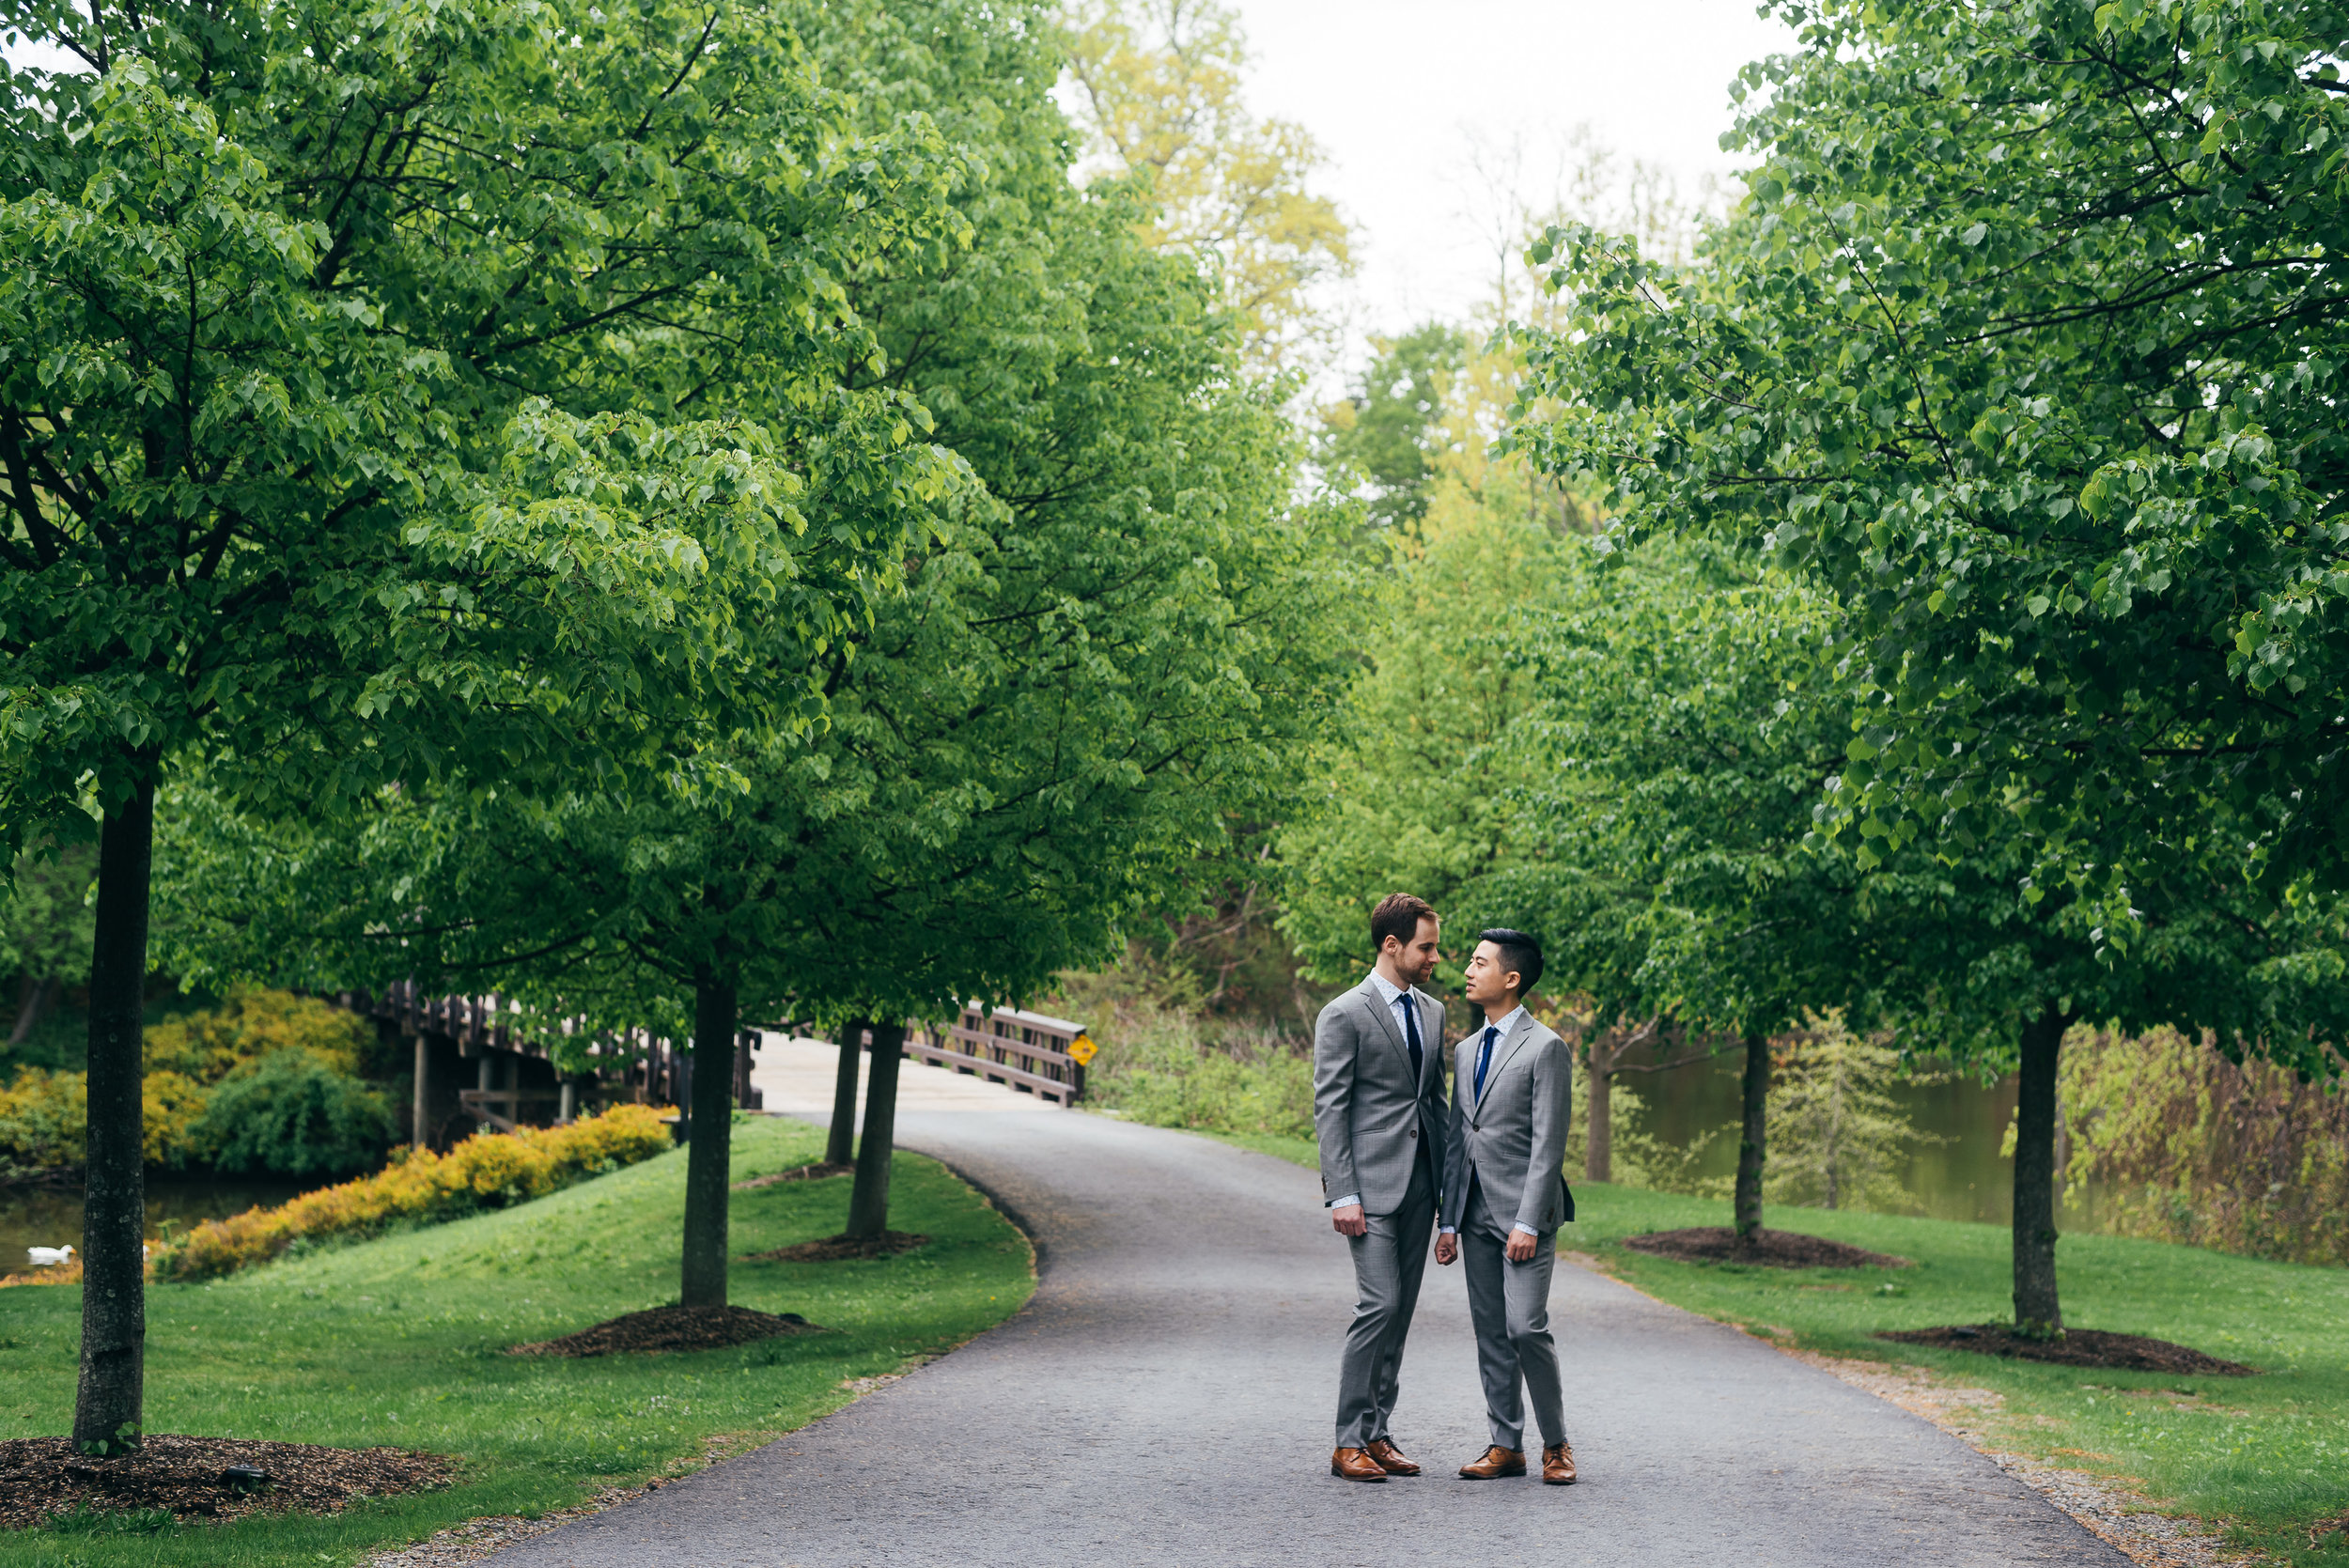 As we did their formal portraits prior to their same sex wedding ceremony, Chad and Eddie wanted to make sure they got to enjoy the property and the beautiful landscape around them in the Hudson River Valley. Buttermilk Falls Inn has all sorts of gorgeous gardens in and around the property, which was a lot of fun to explore and take photos with them in.